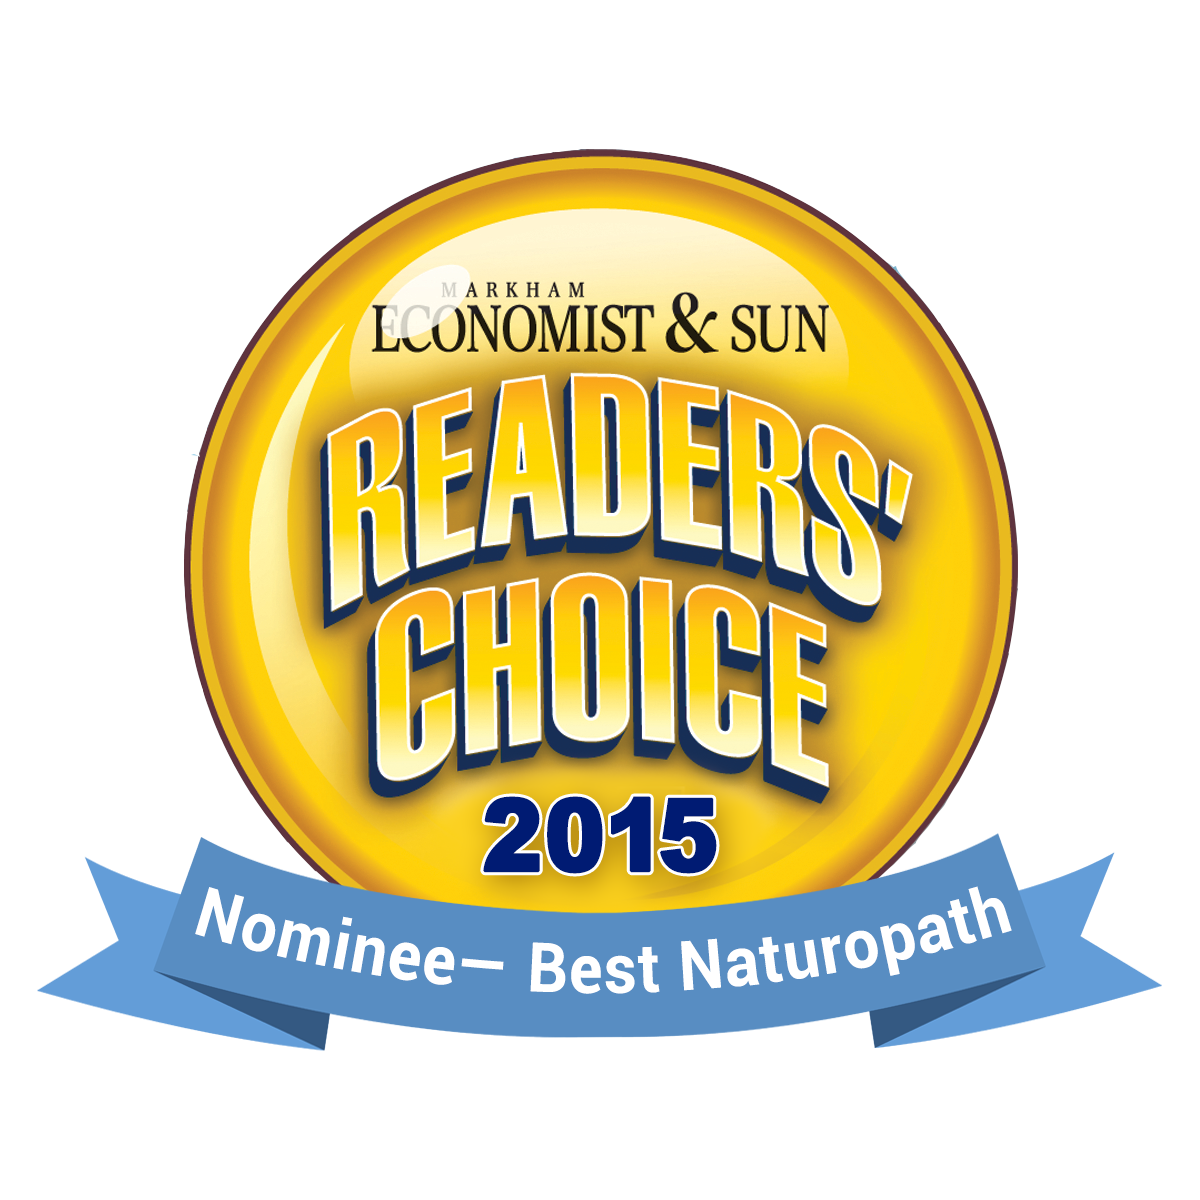 Reader's Choice Award - 2015 Nominee, Best Naturopath